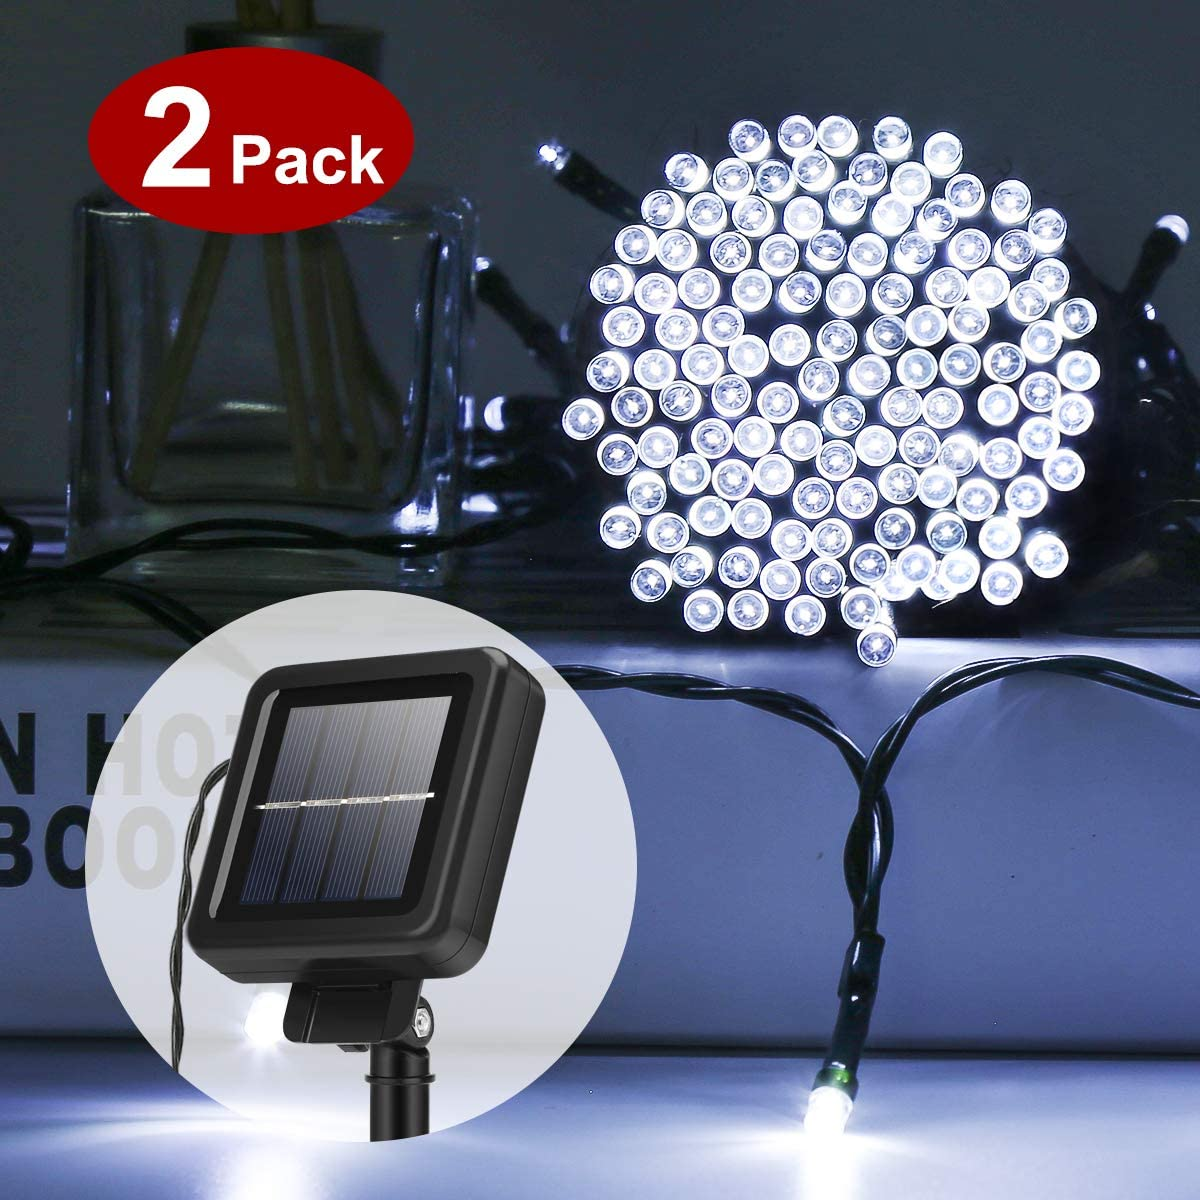 yunni solar outdoor string lights 2 pack 200 led 72ft patio decorative lighting waterproof solar powered christmas lights for